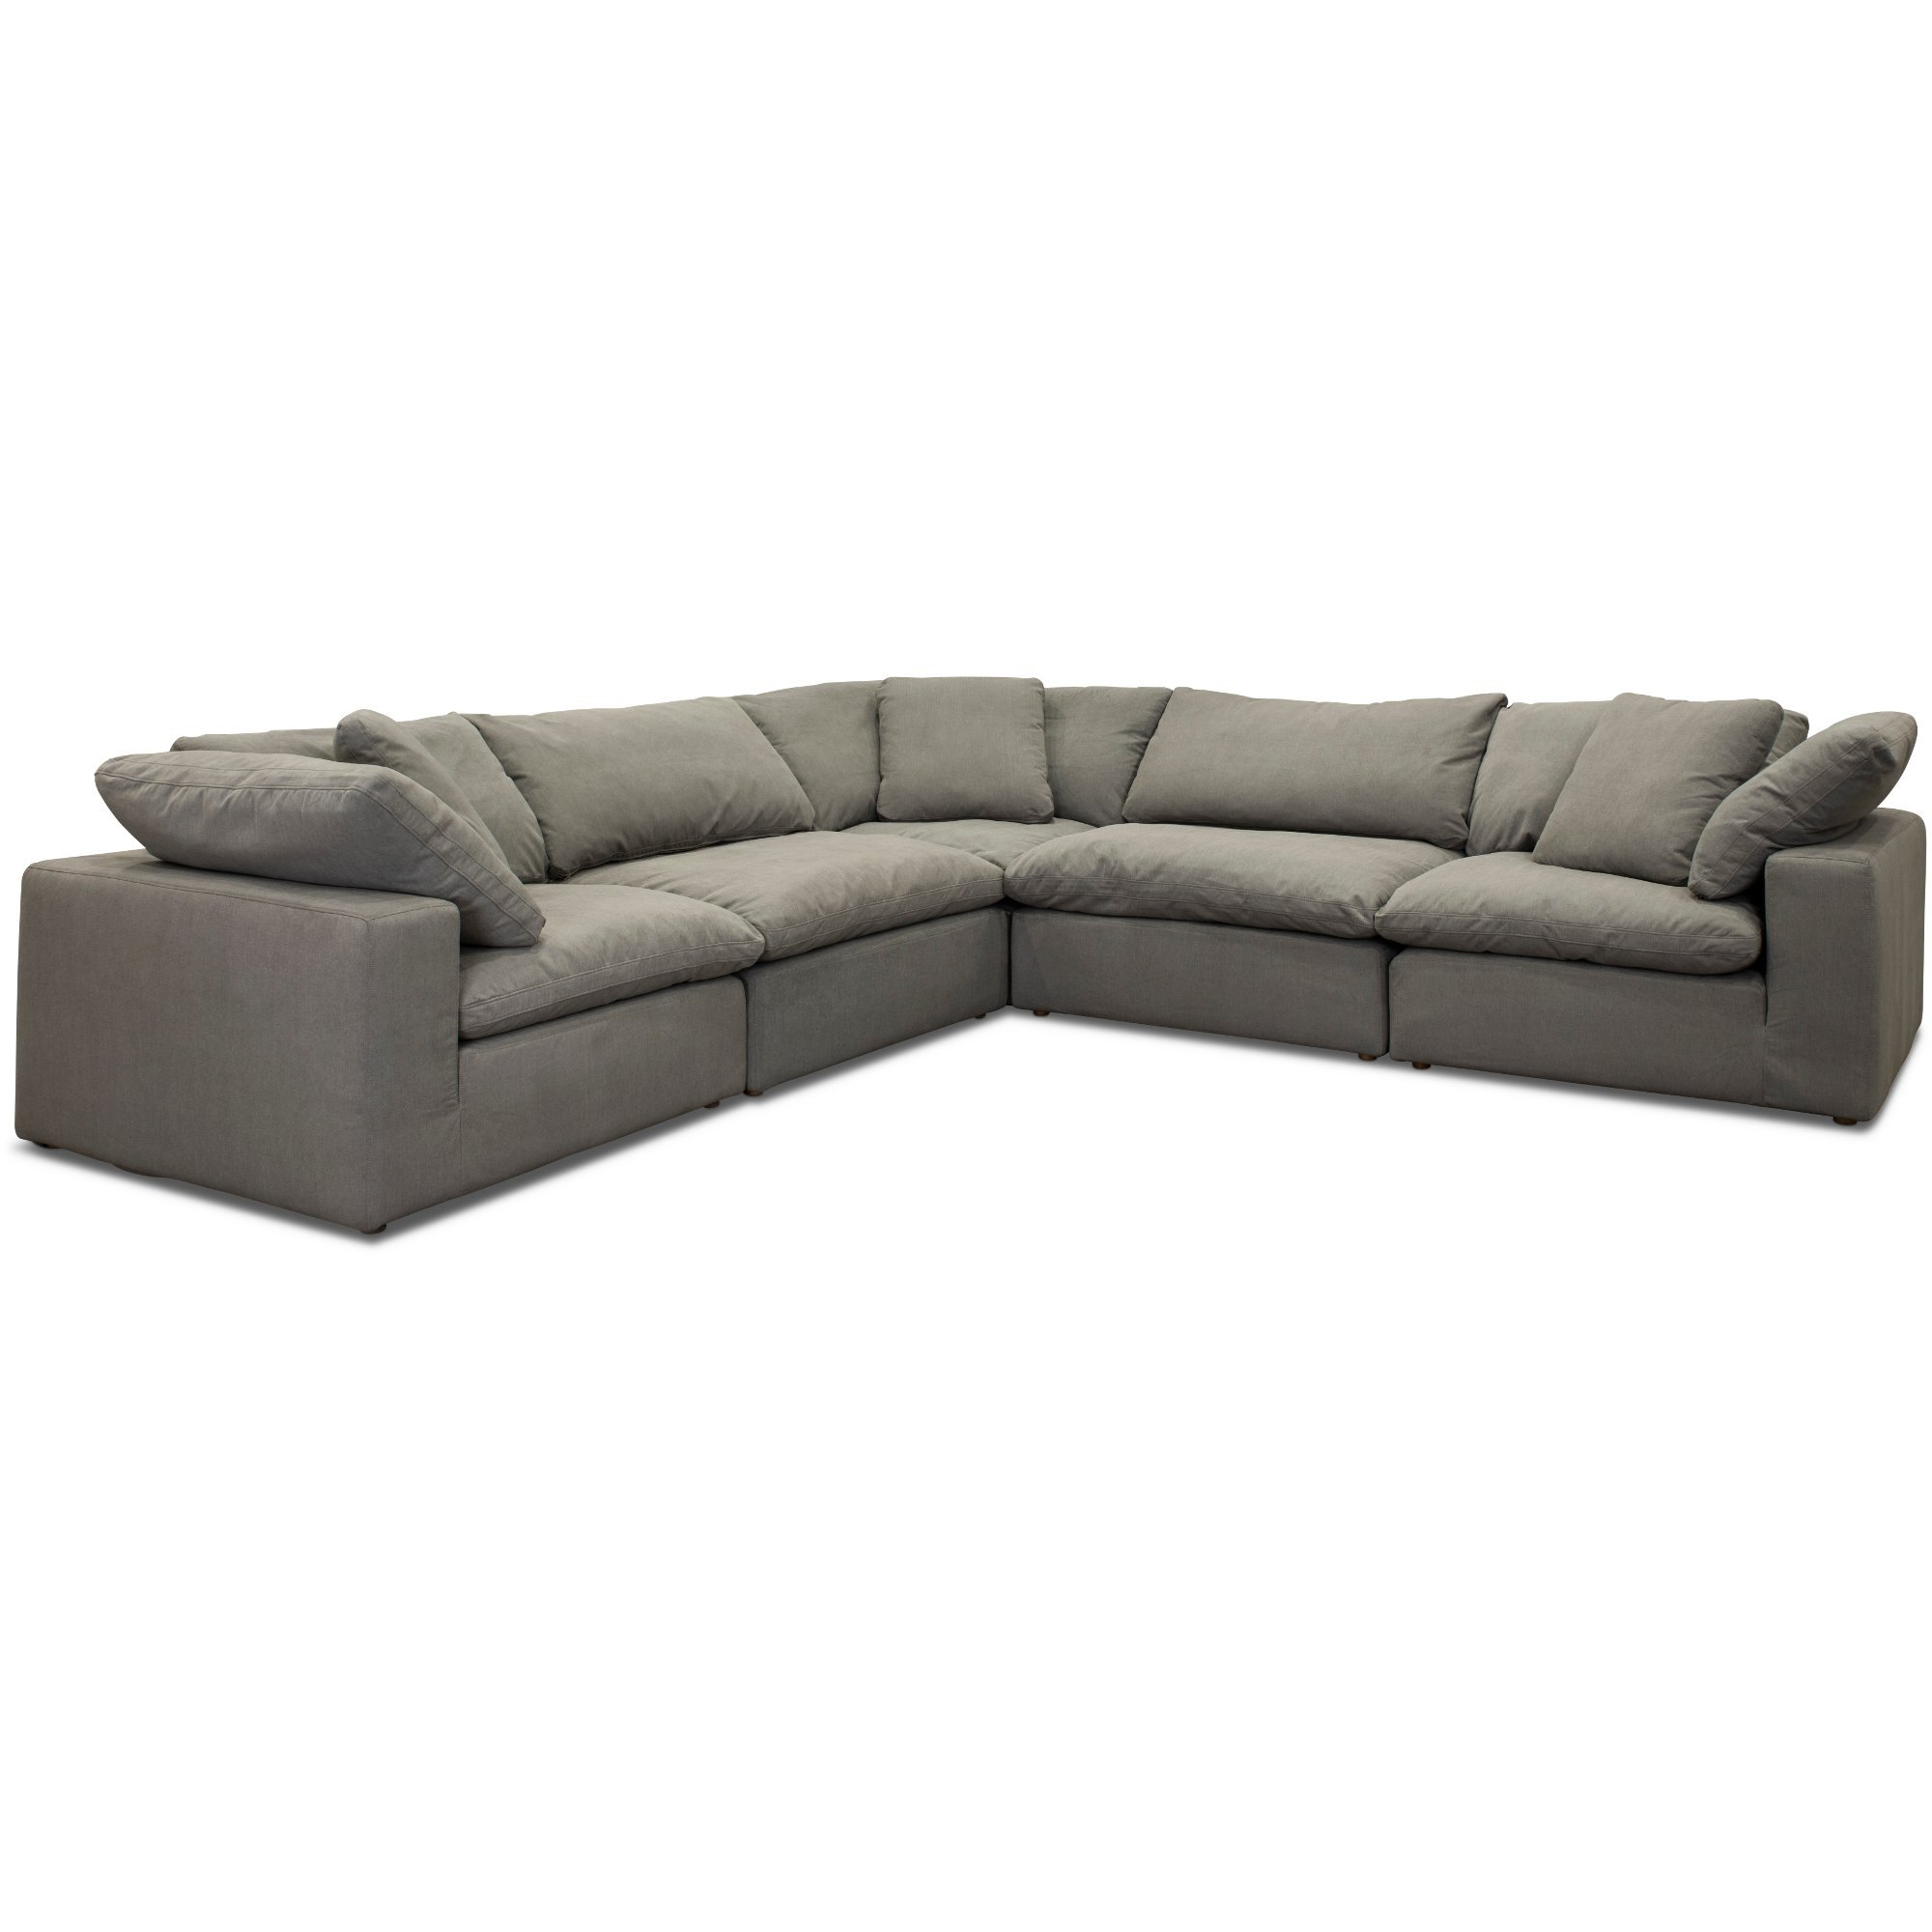 Popular Denali Light Grey 6 Piece Reclining Sectionals With 2 Power Headrests With Regard To Perfect Product Image Gennaro Pc Lear Sectional Lear Living Rooms (View 14 of 20)